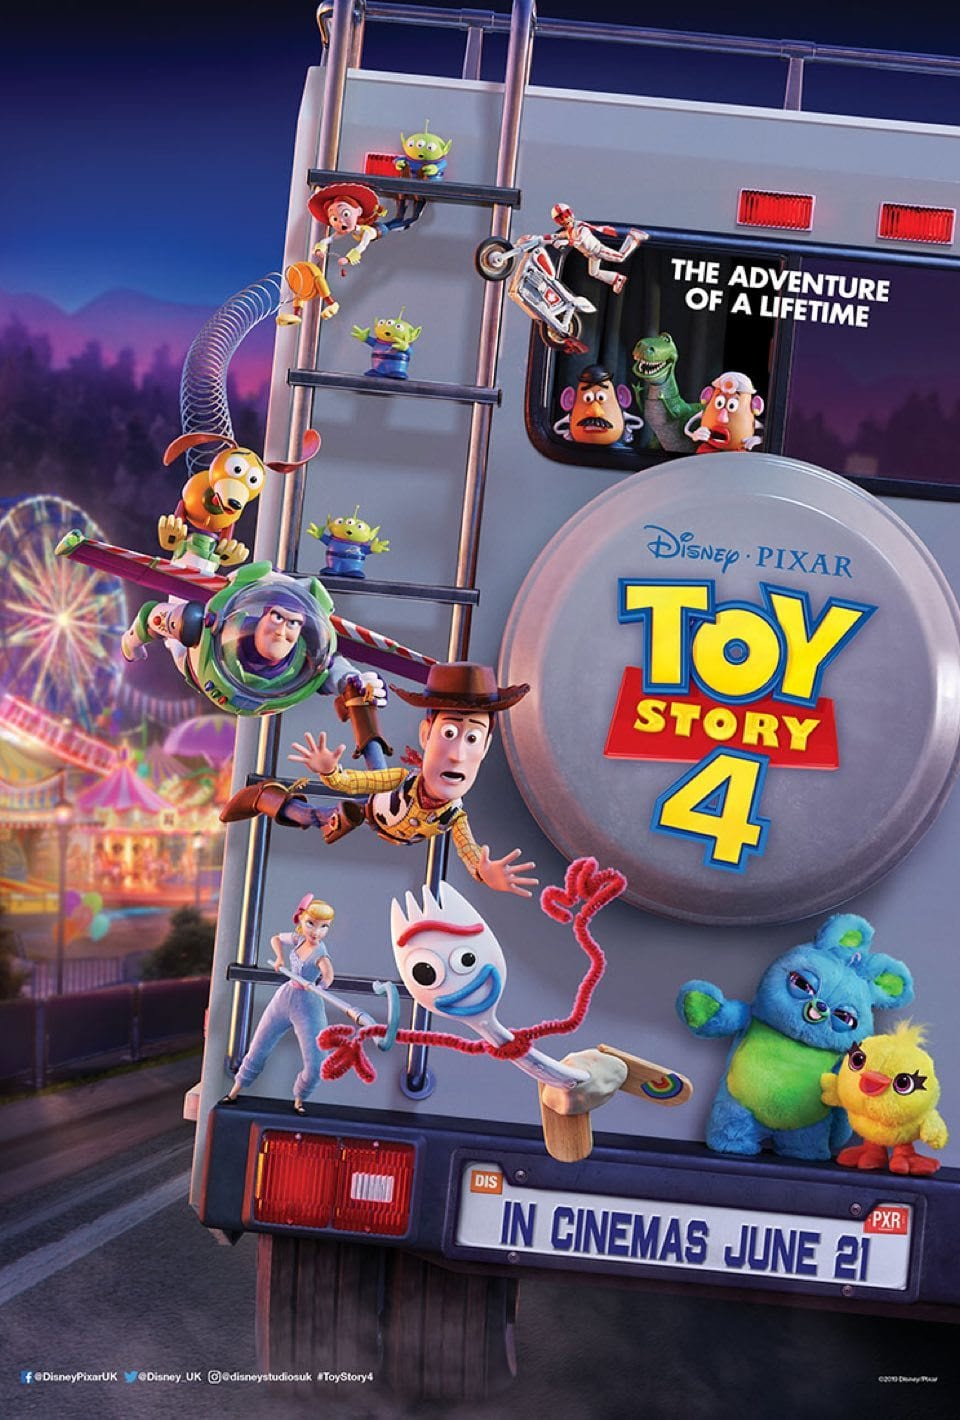 Toy Story 4 poster promises 'The Adventure of a Lifetime ...